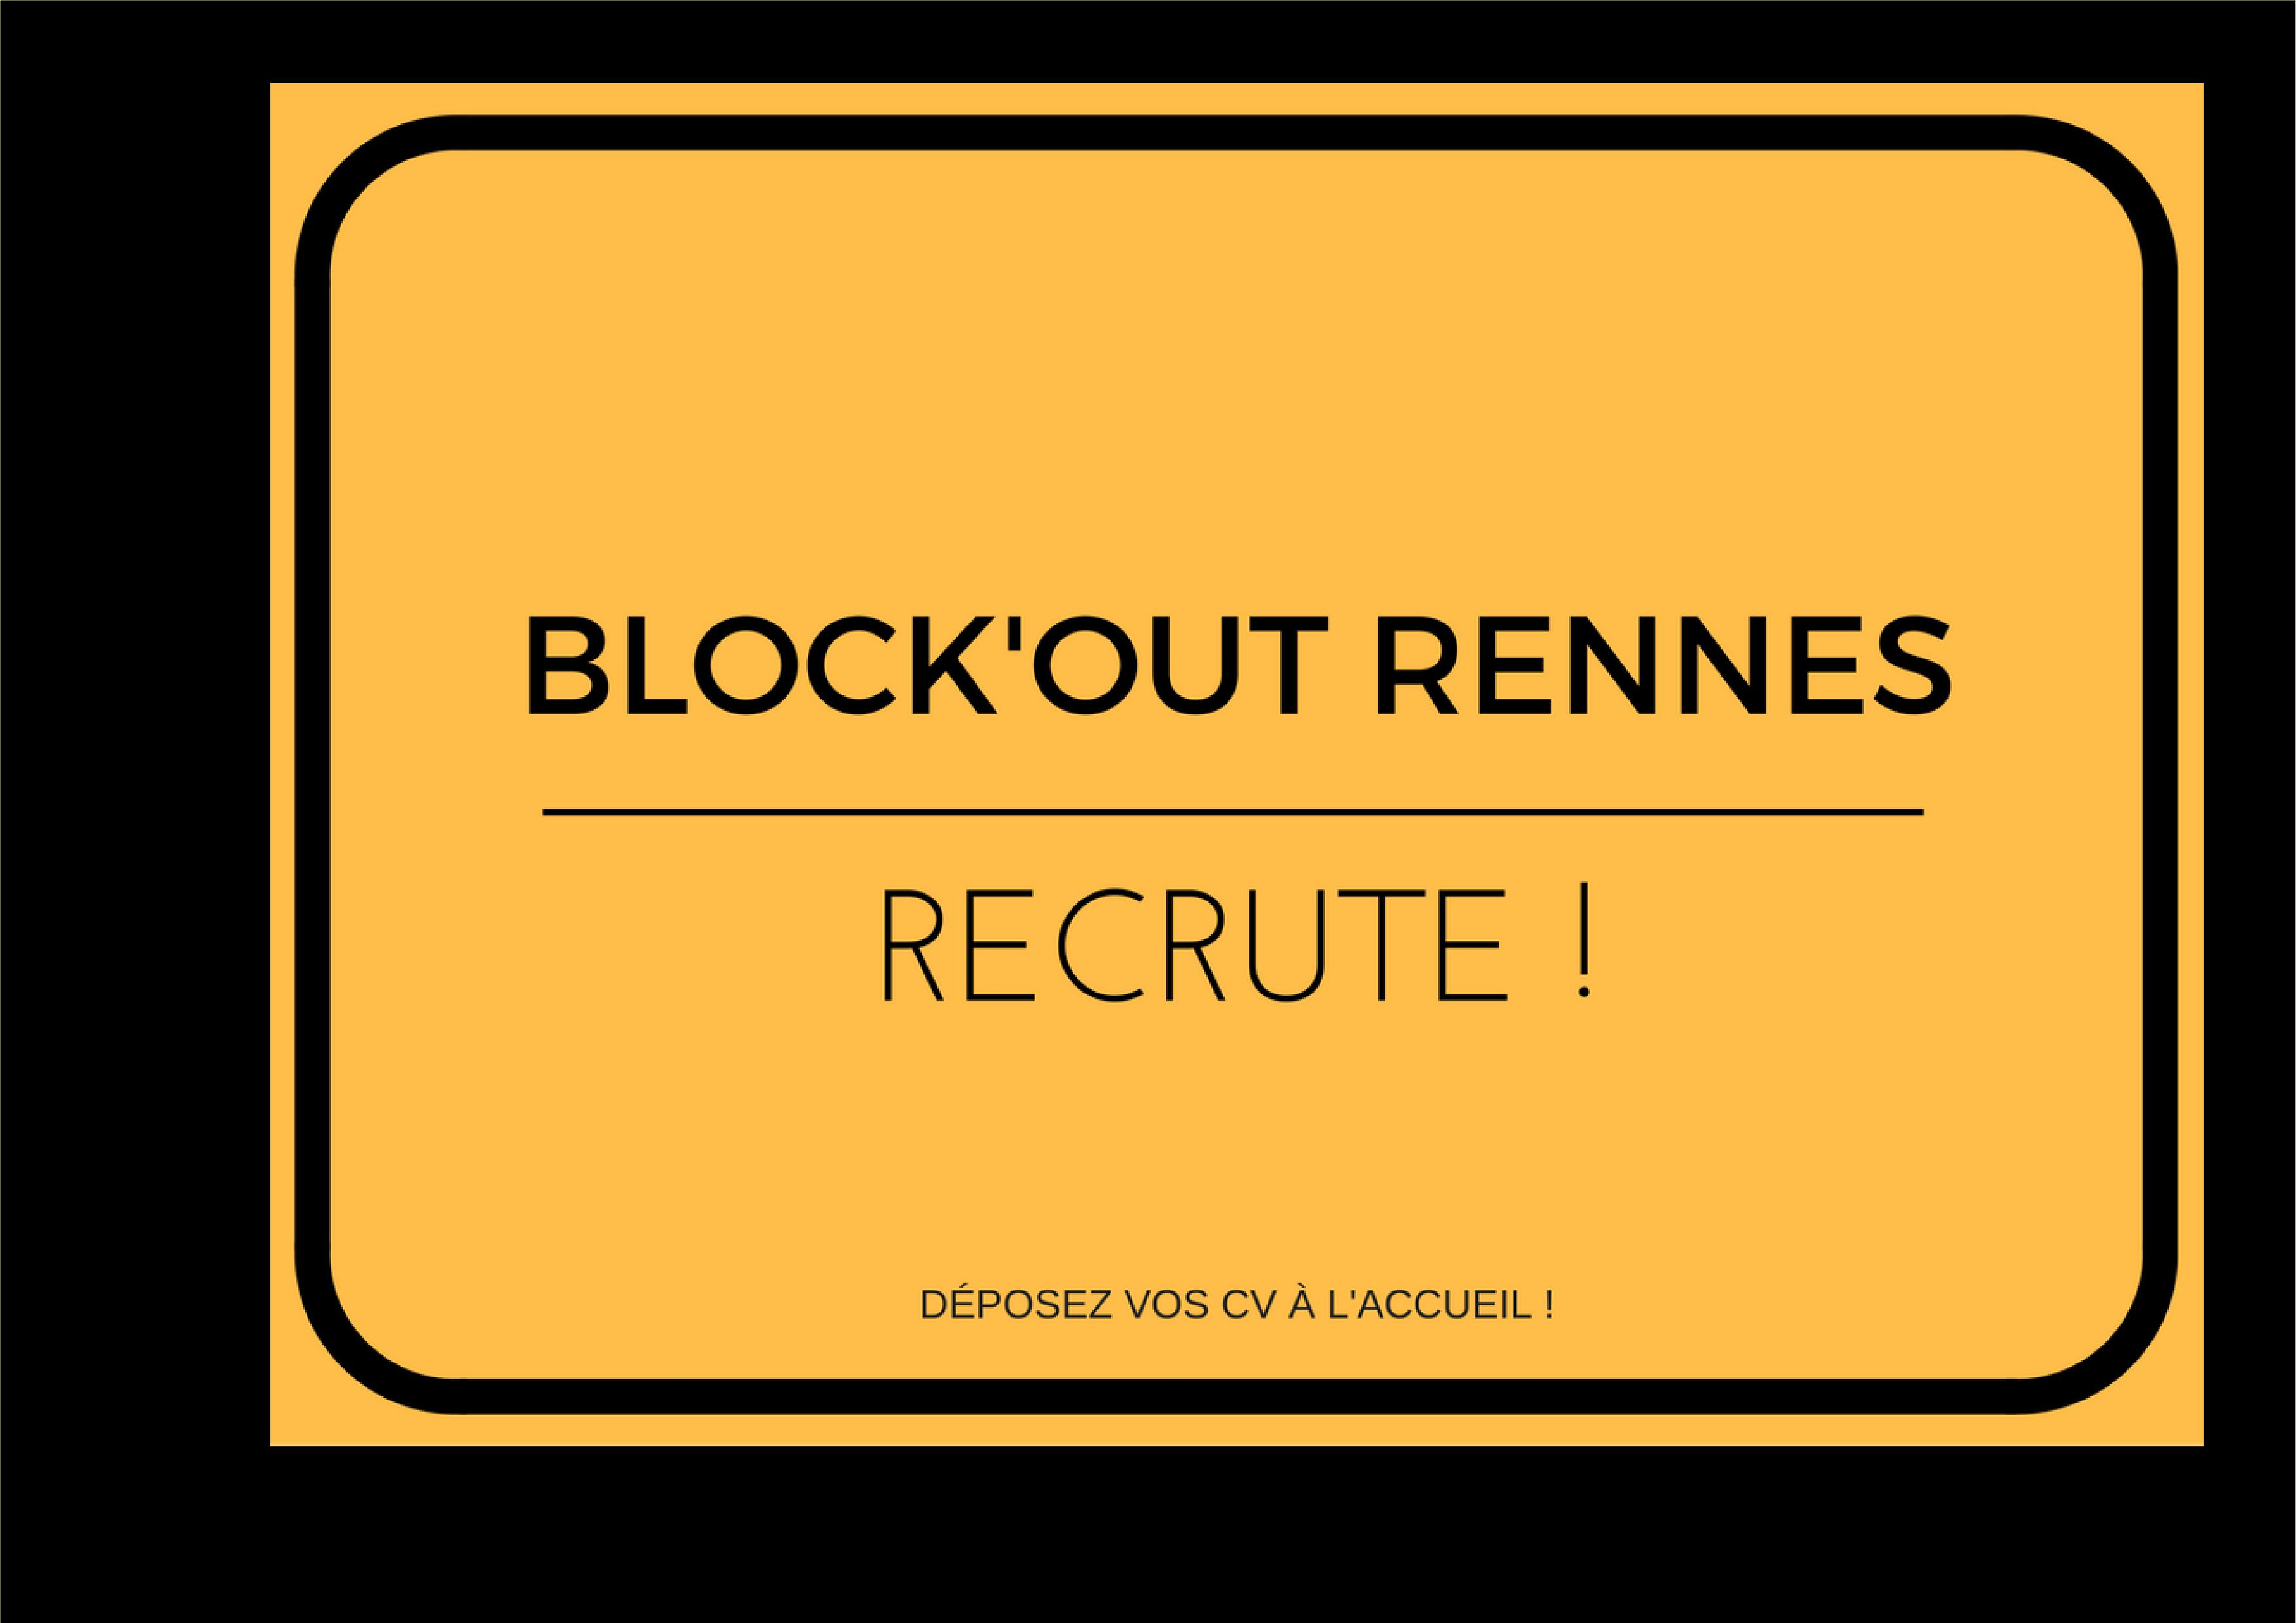 Block'Out Rennes recrute !! - Block'Out Rennes